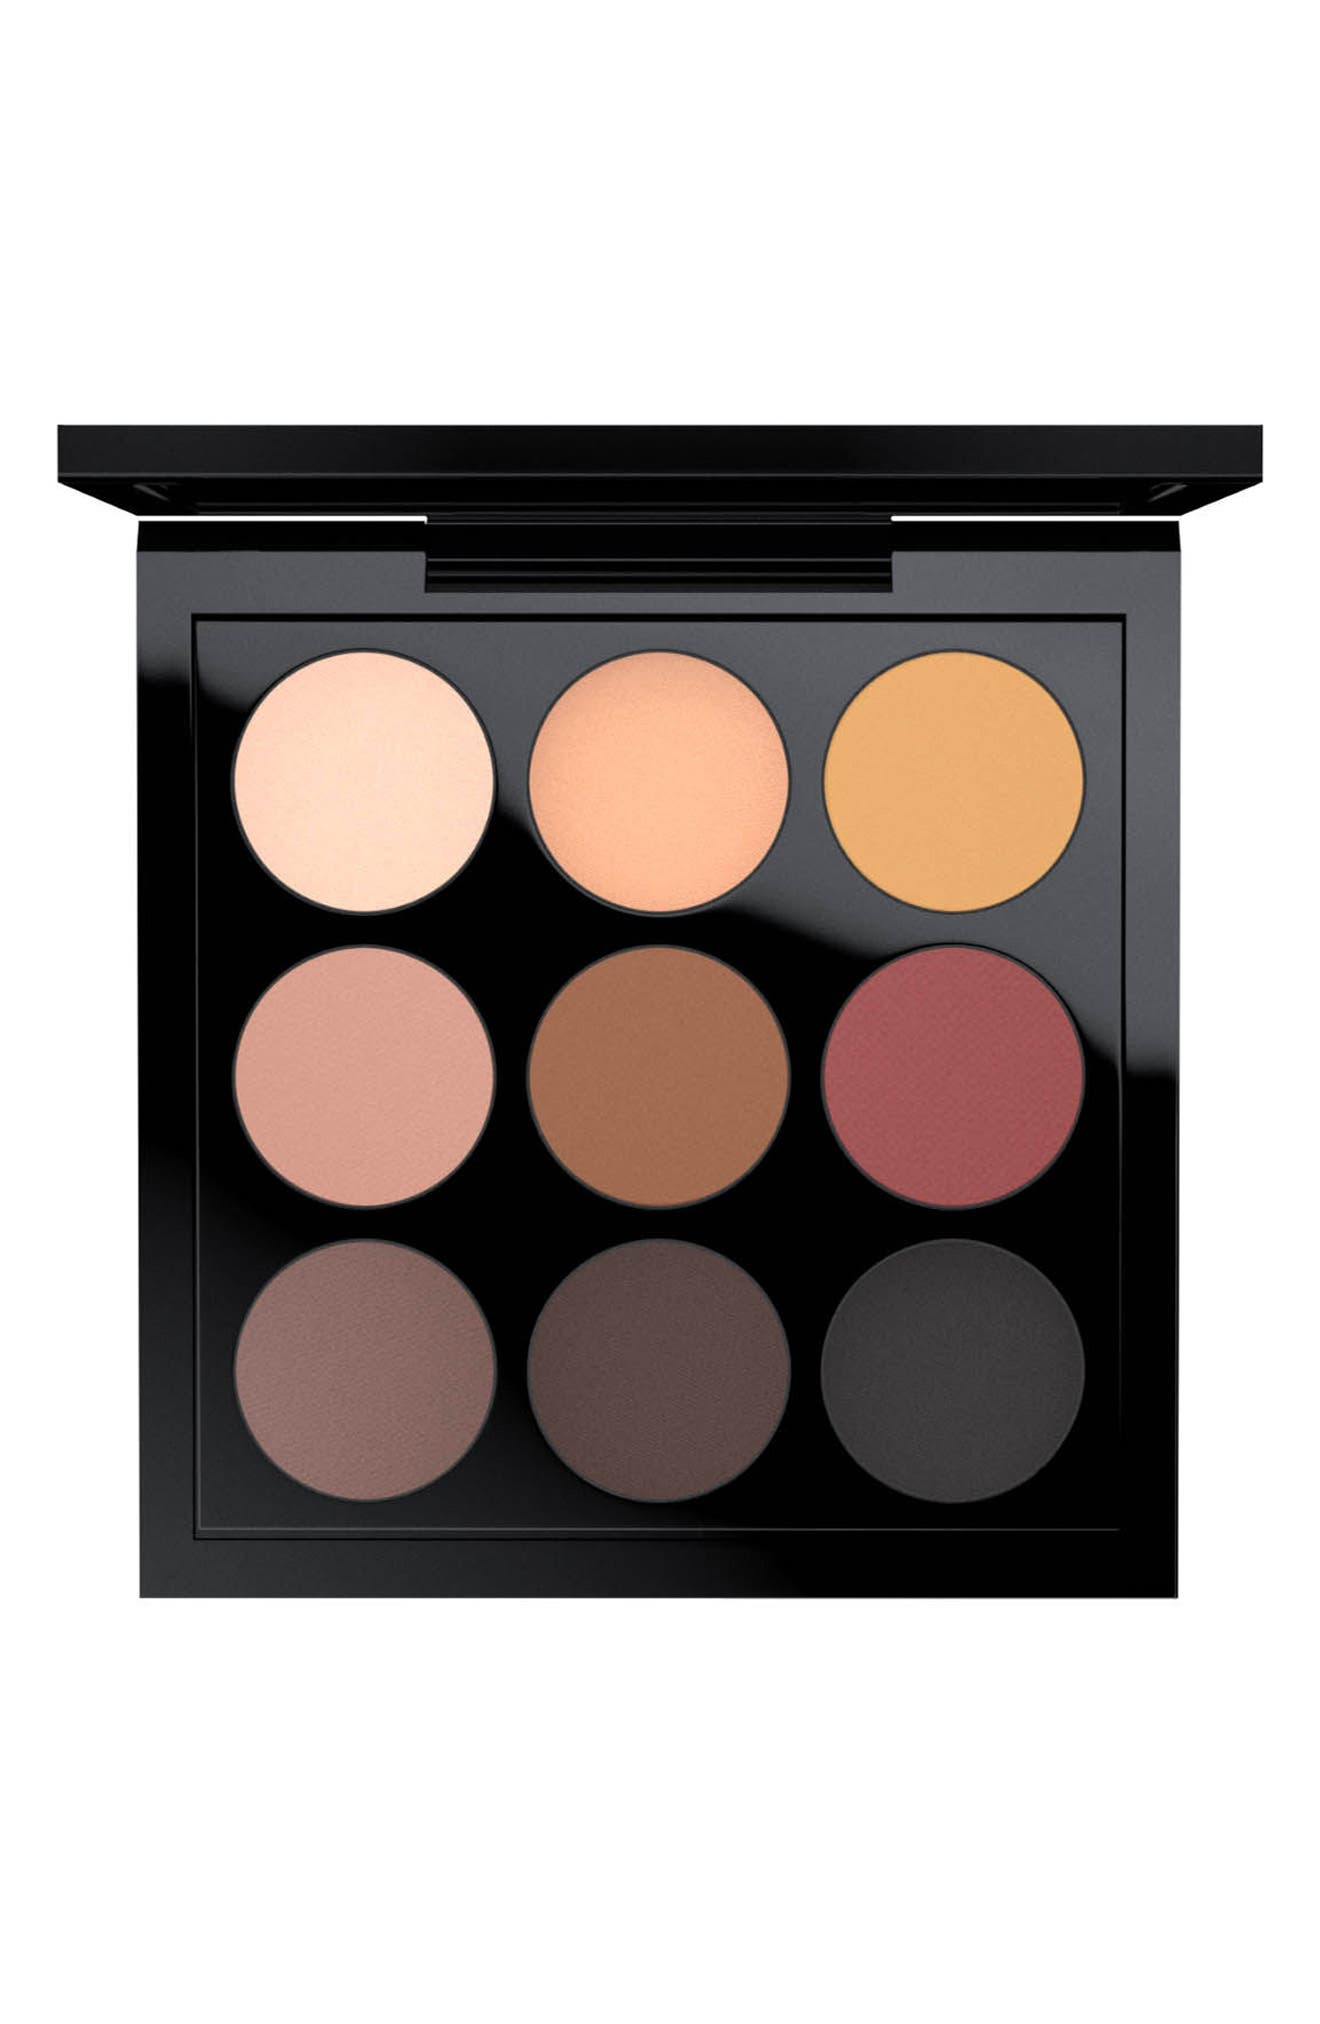 MAC Semi-Sweet Times Nine Eyeshadow Palette ($53 Value)